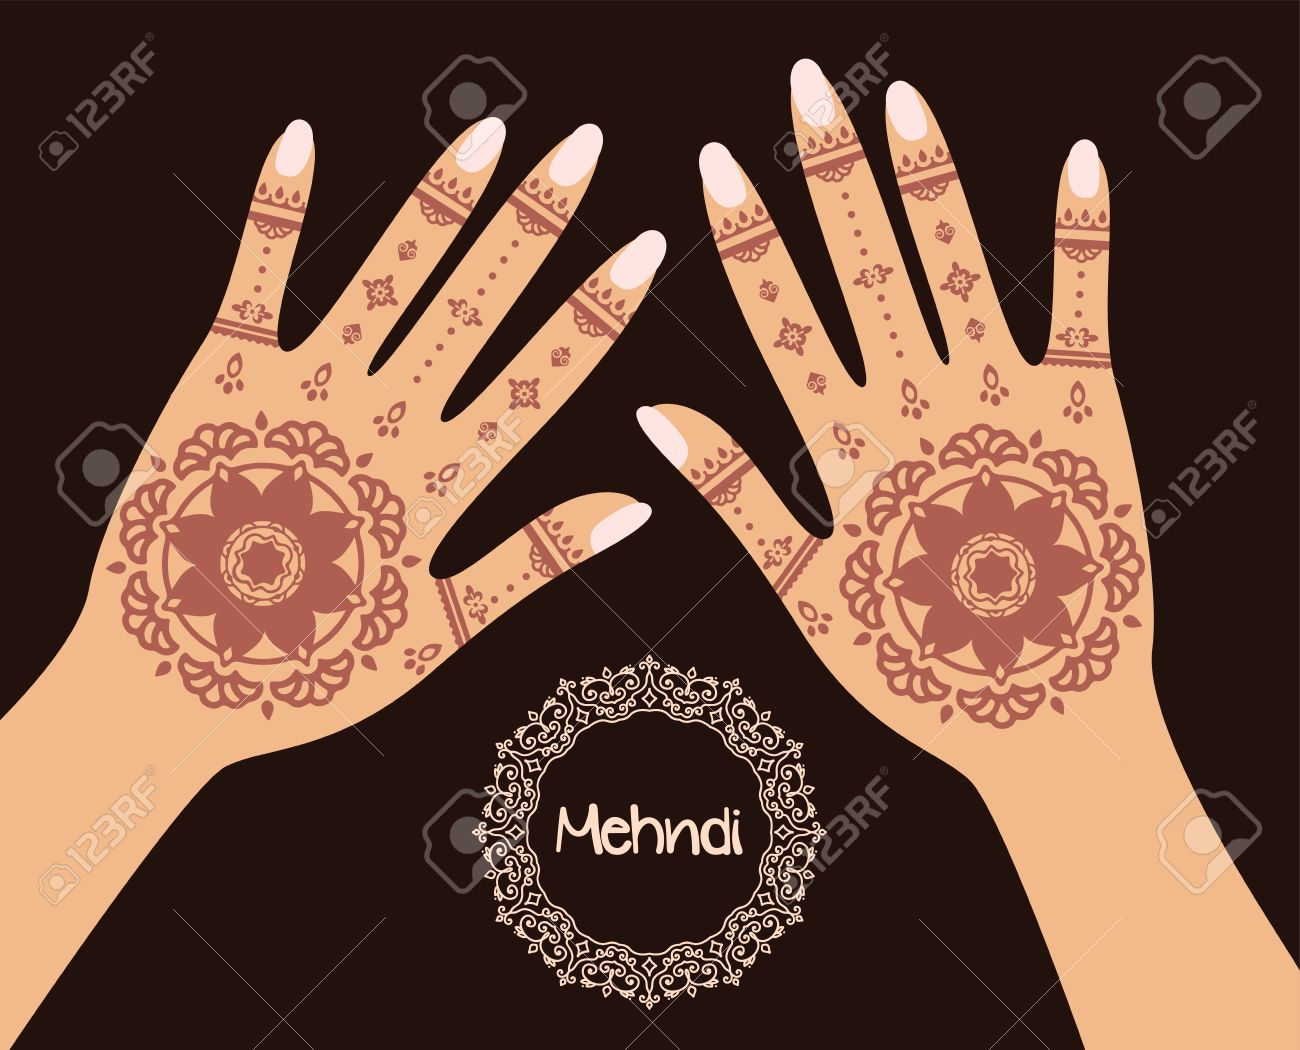 Henna Mehndi Vector Free Download : Henna tattoo mehandi in hand vector illustration royalty free